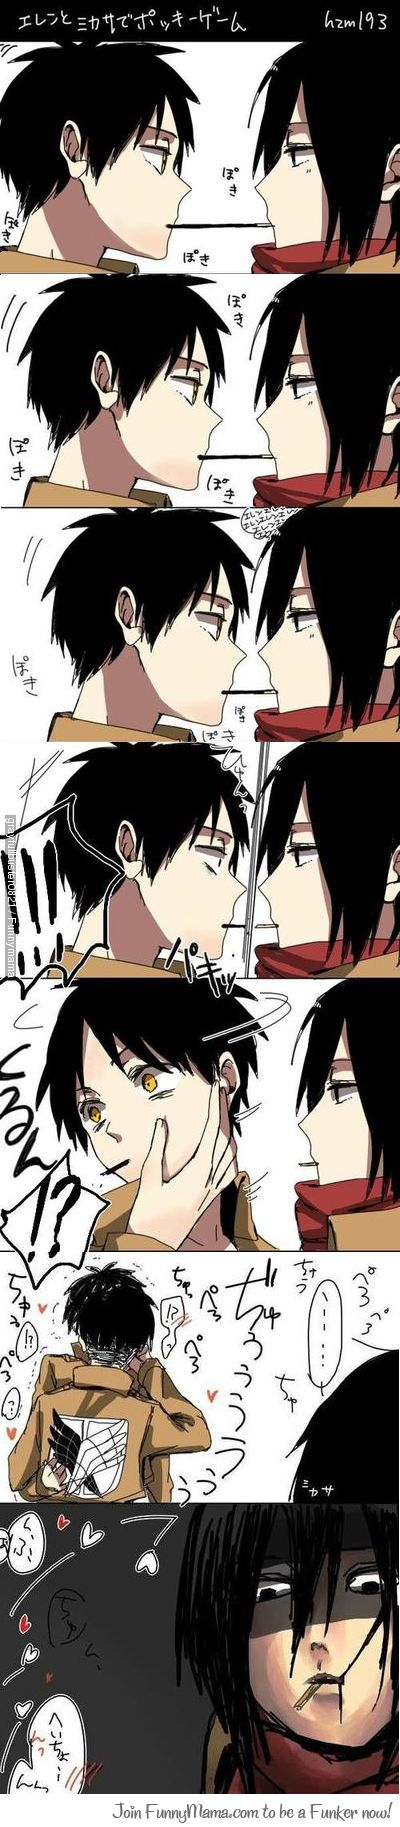 In yo face Mikasa!!no offense to the eren x mikasa shippers,but i ship eren x levi!!!!